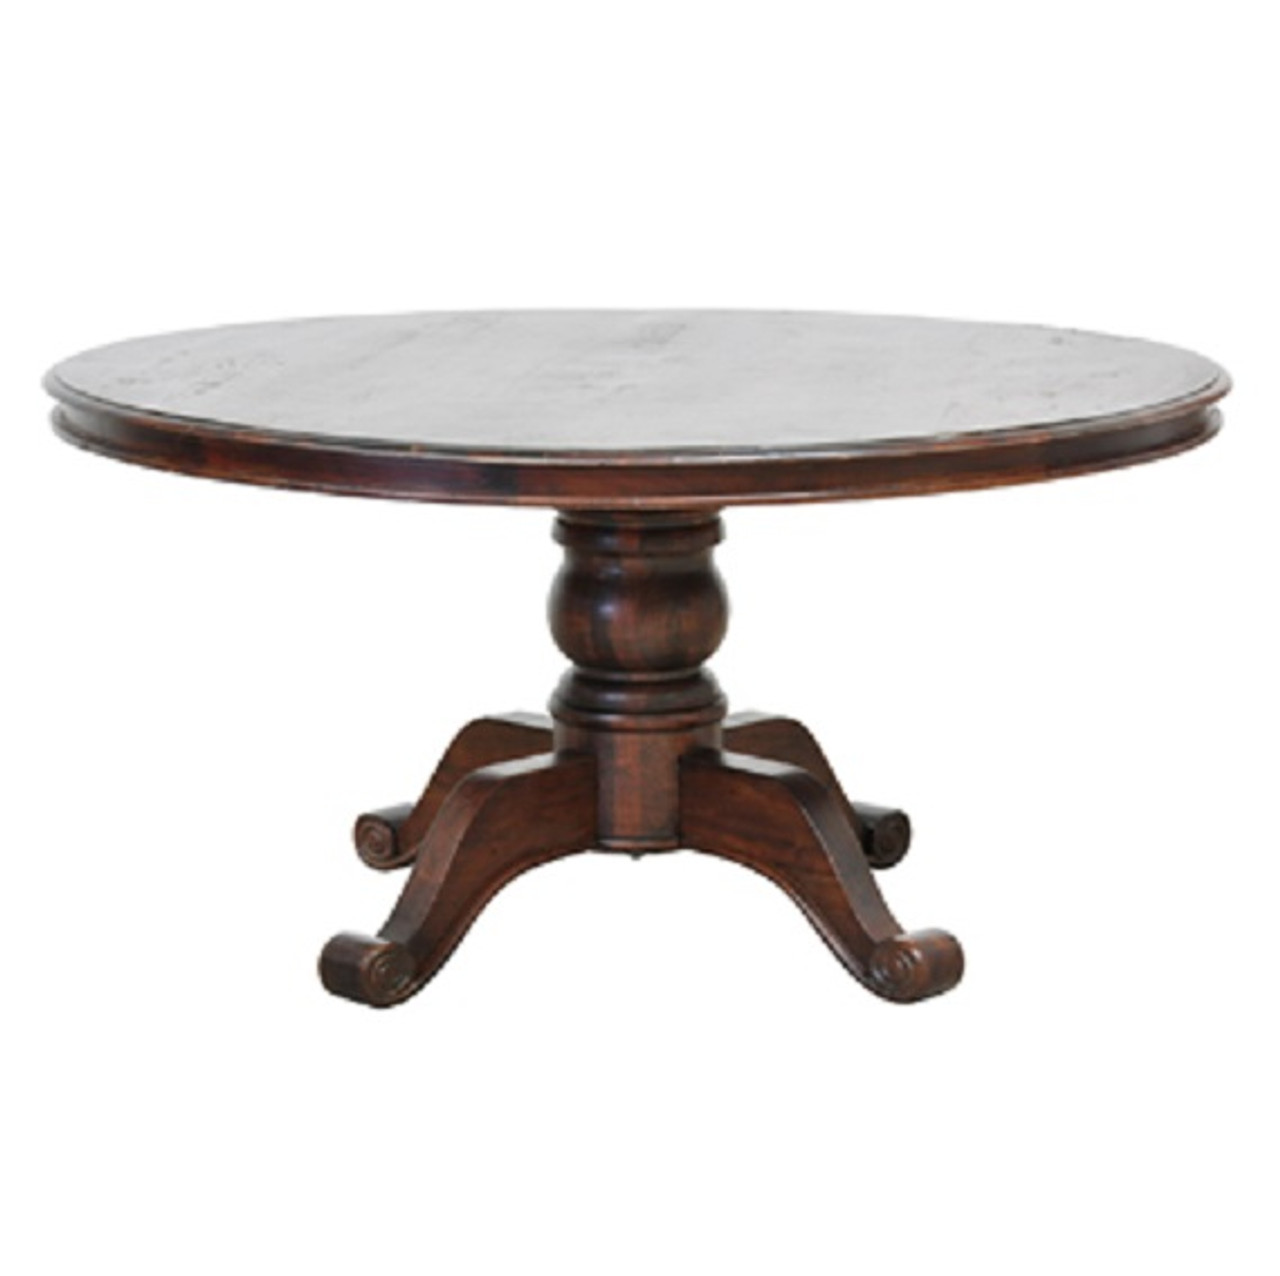 Hampton 60 round pedestal wood dining table in brown for Dining room table 42 x 60